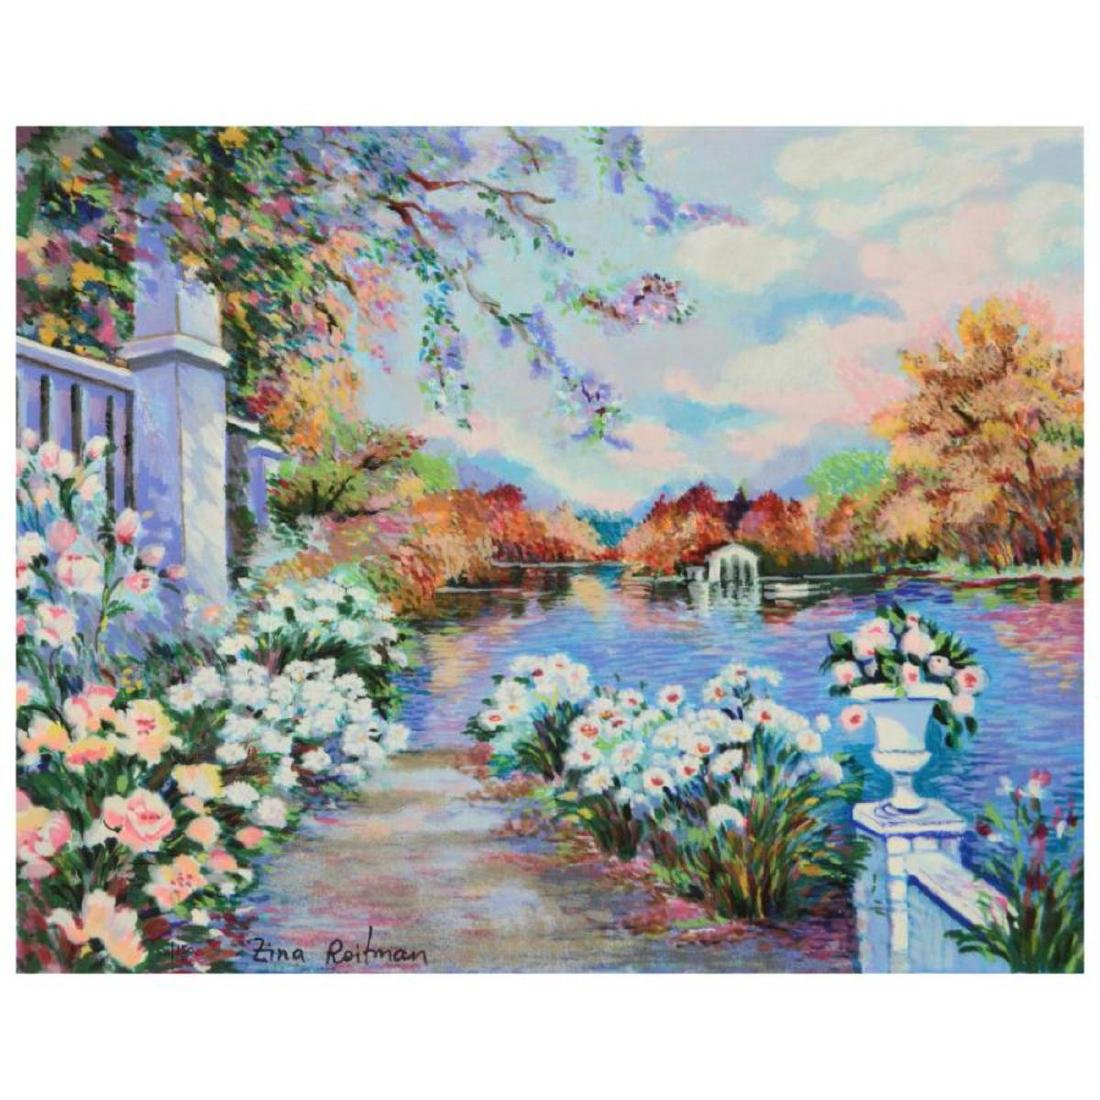 "Zina Roitman, ""Lac Fleuri"" Limited Edition Serigraph on"